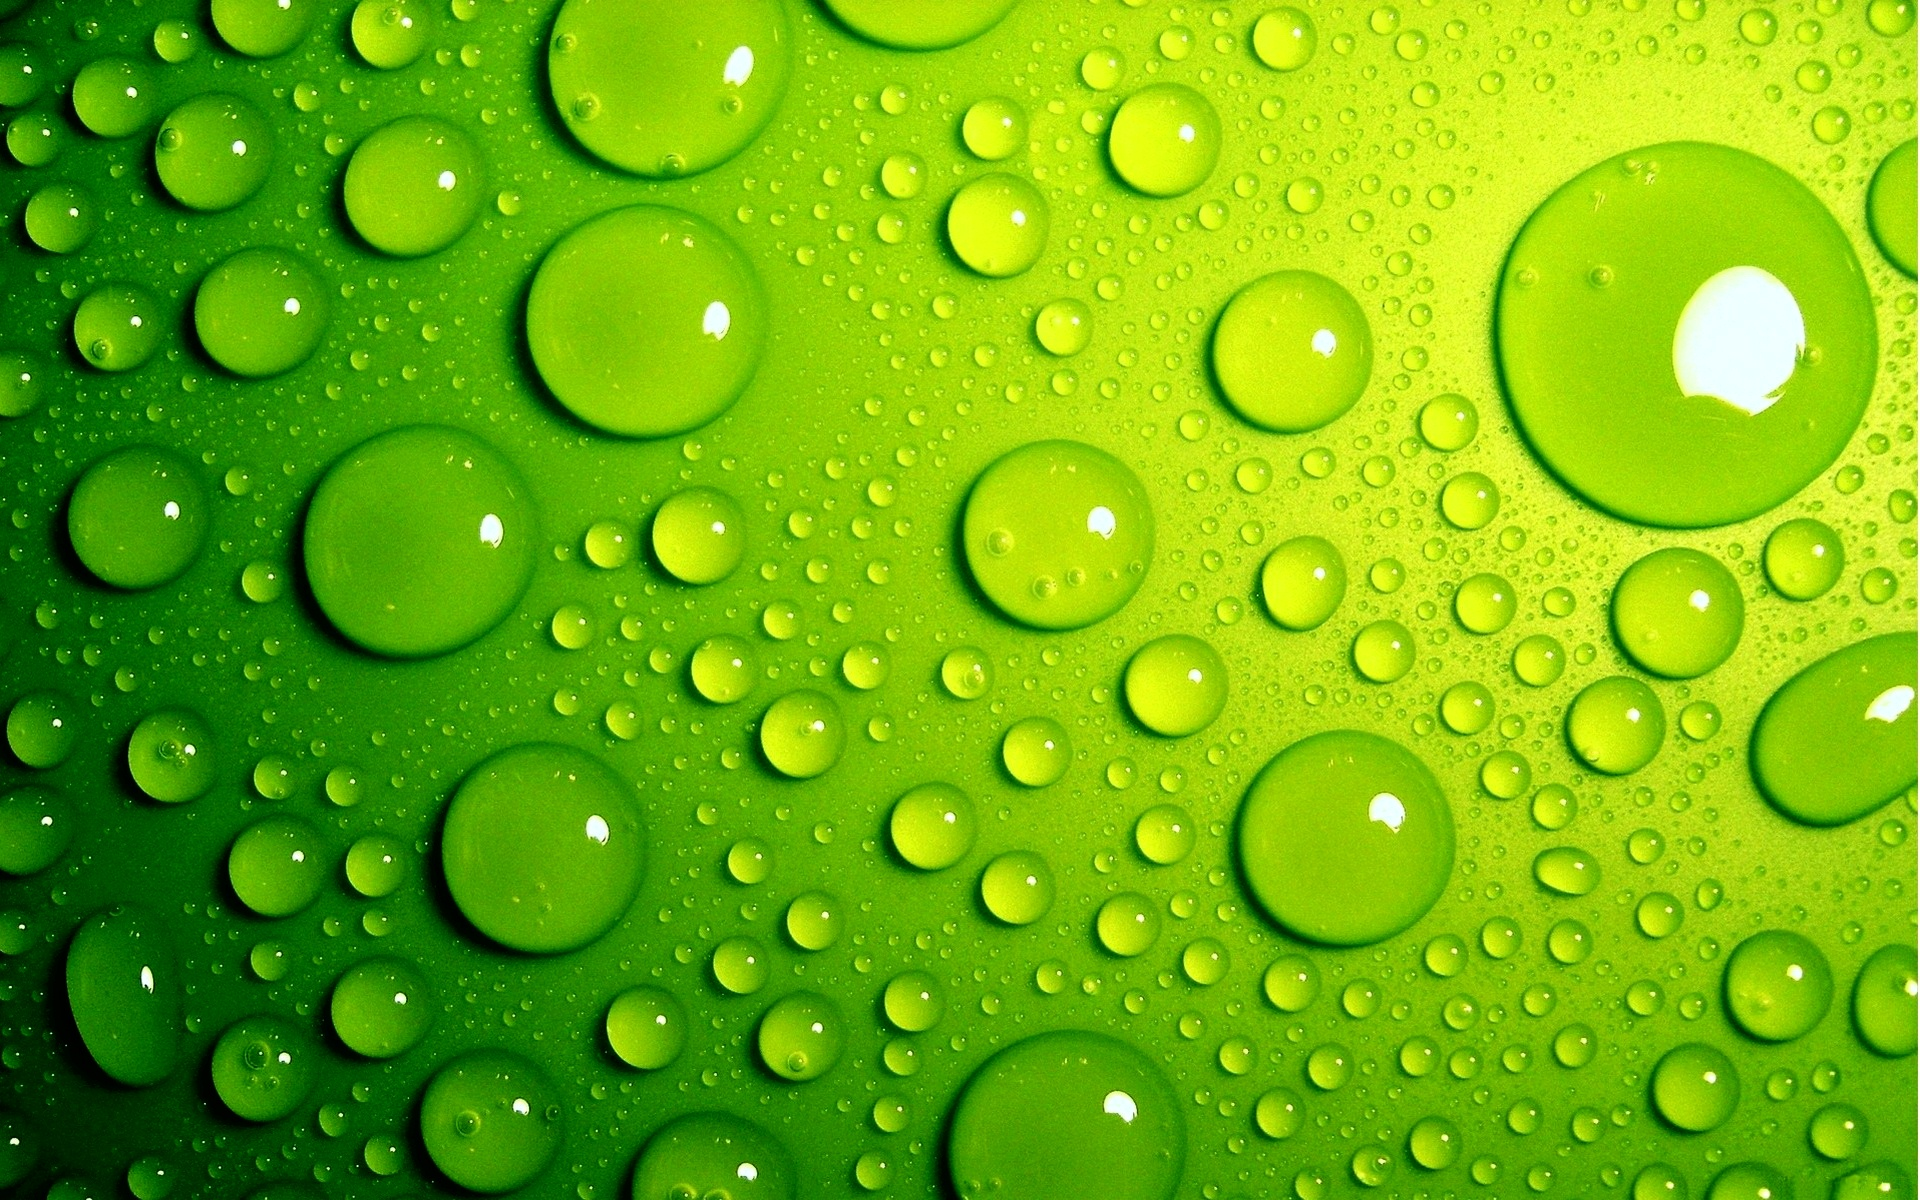 Green Bubbles 221.52 Kb